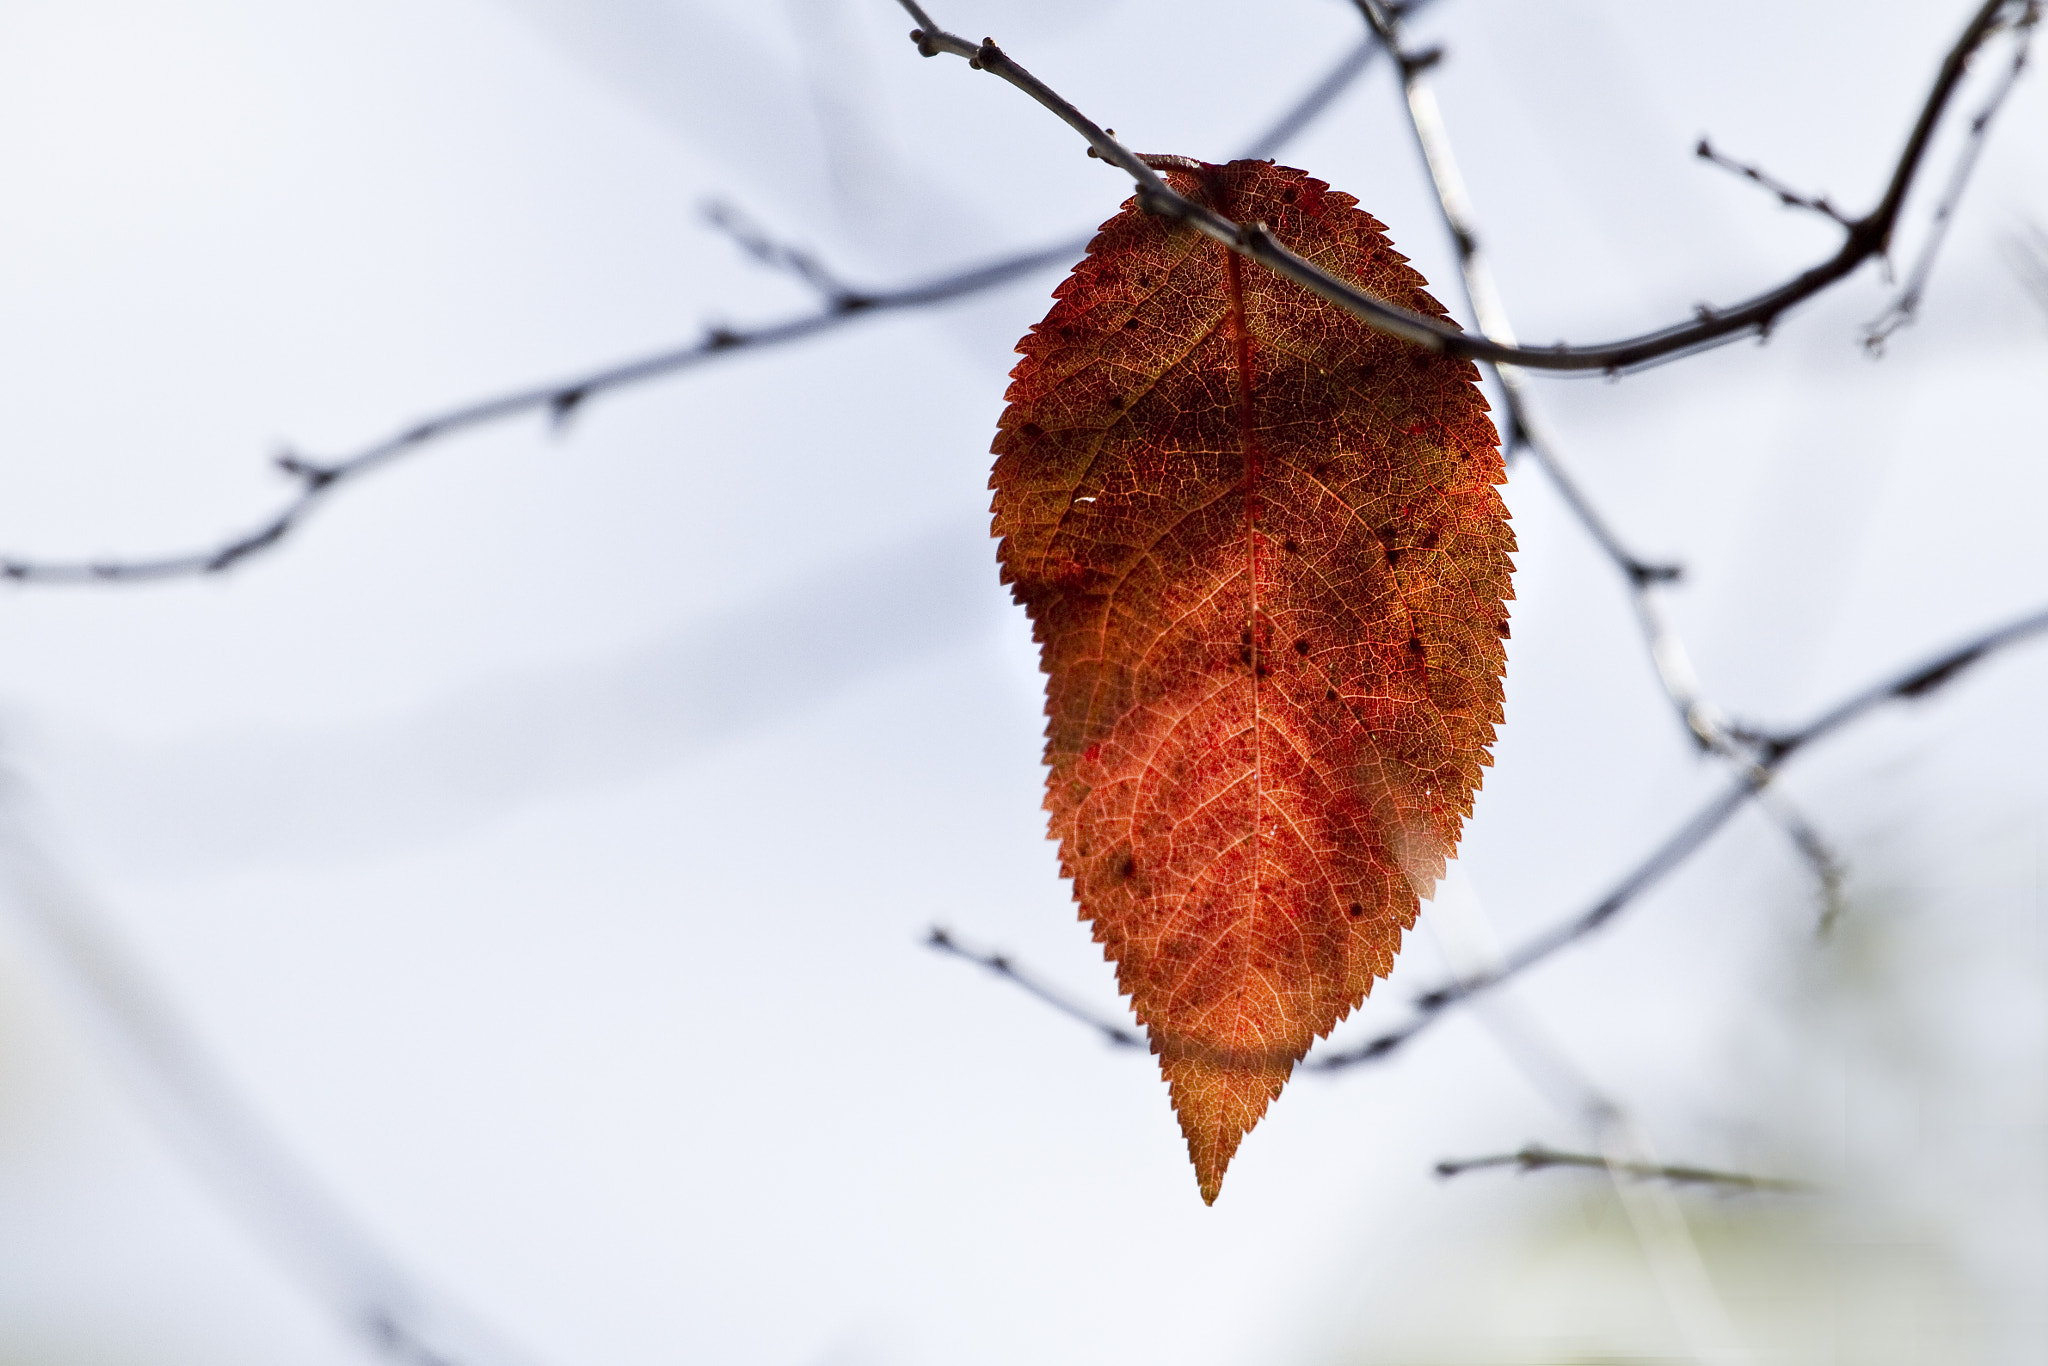 Photograph The Last Leaf by Rajesh Gathwala on 500px